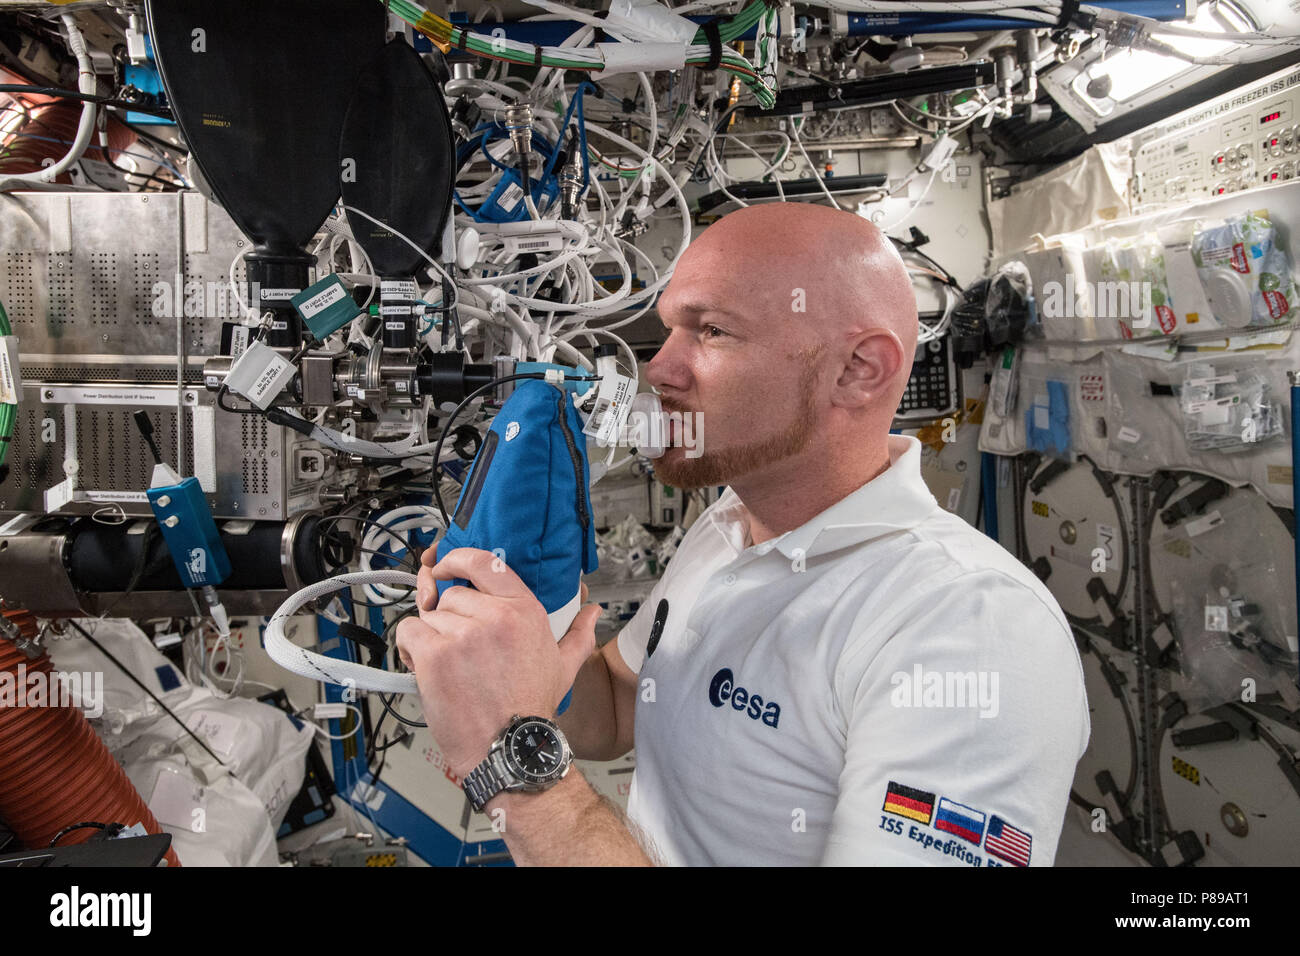 Expedition 57 crew member German astronaut Alexander Gerst of the European Space Agency exhales into an ultra-sensitive gas analyzer for the Airway Monitoring experiment aboard the International Space Station June 29, 2018 in Earth Orbit. - Stock Image